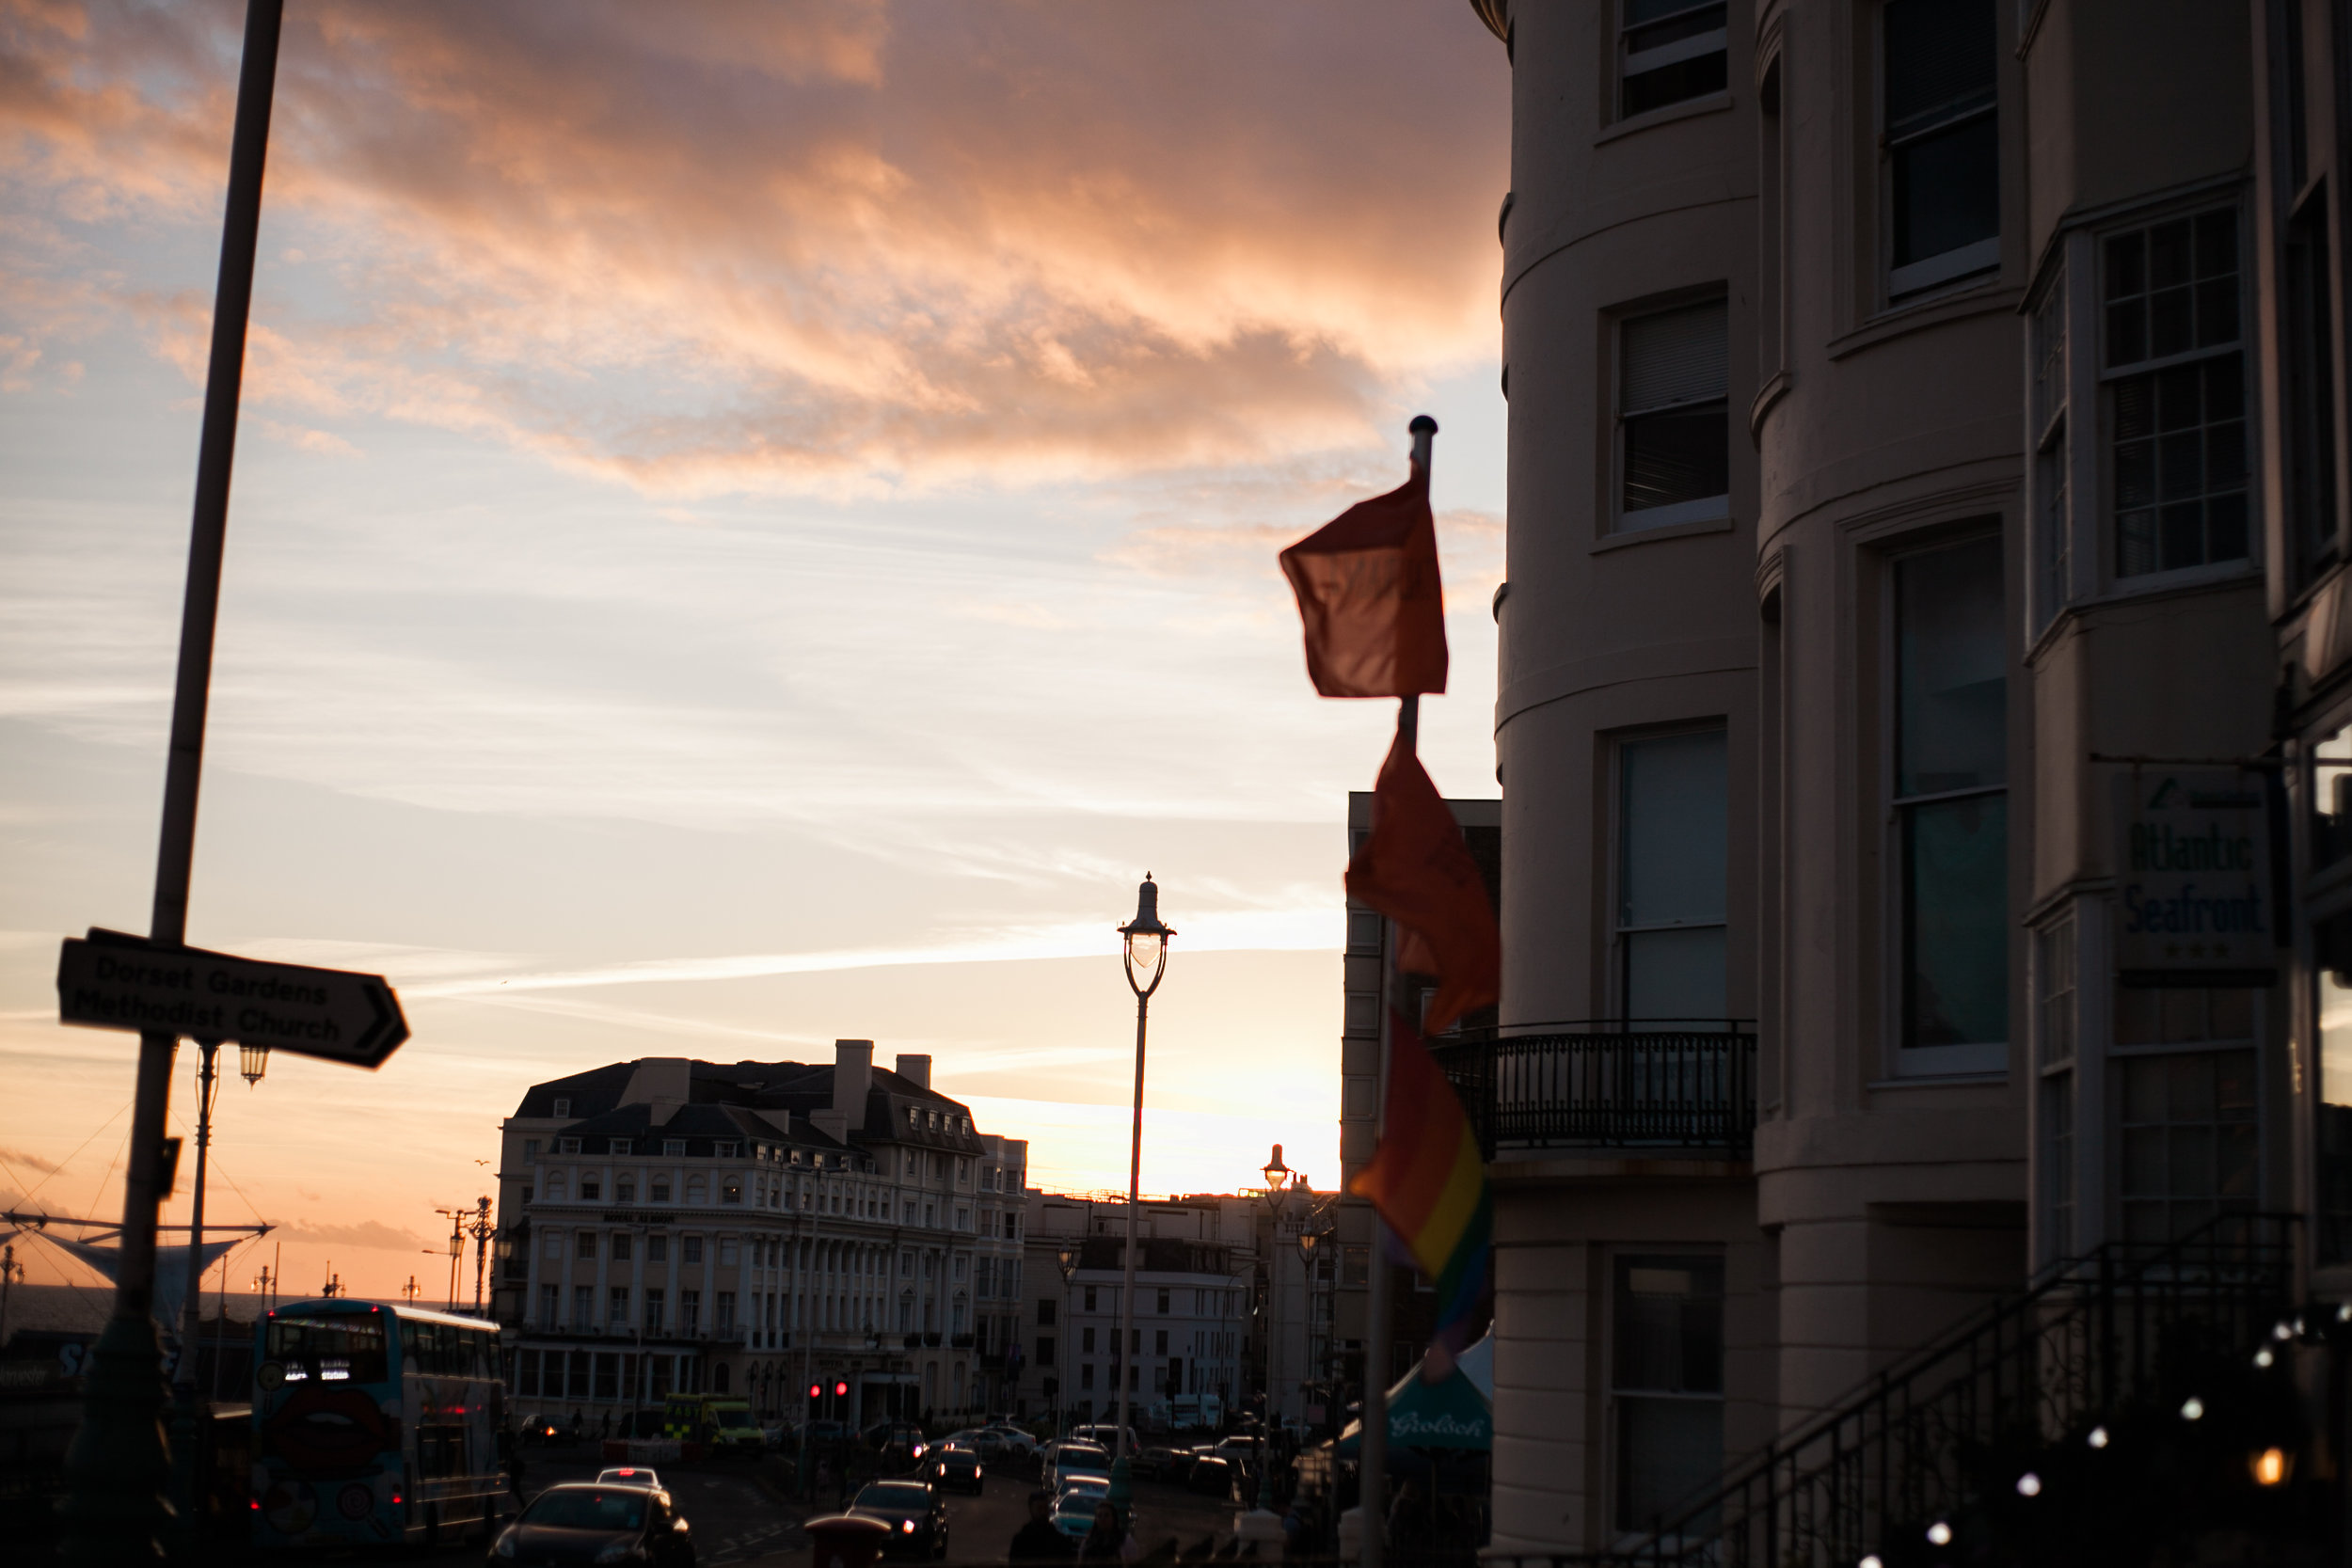 day_four_brighton (56 of 65).jpg